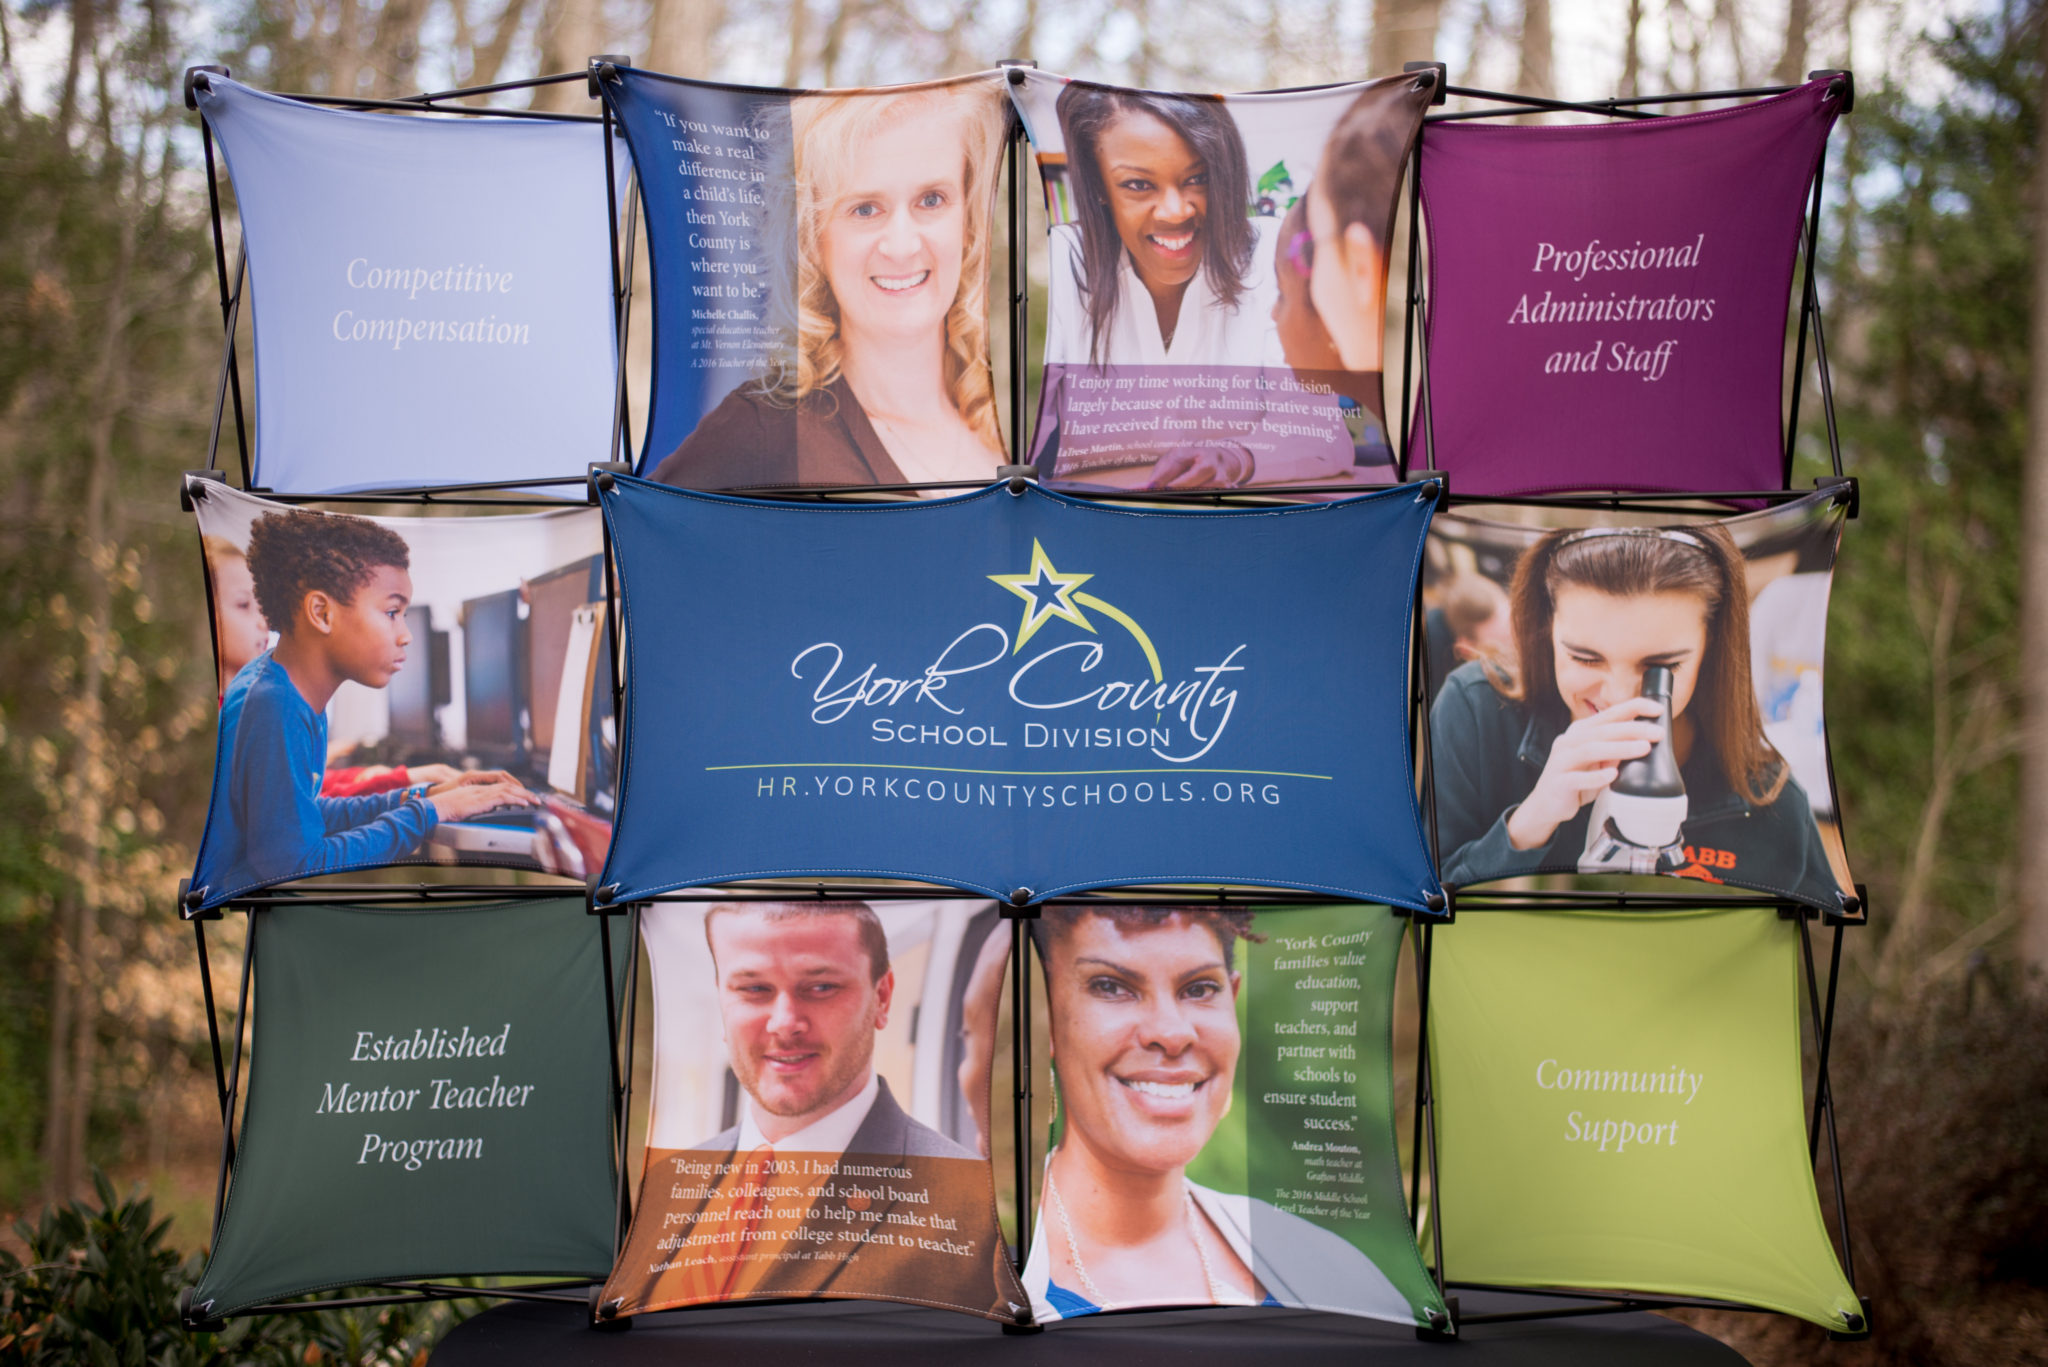 This award-winning campaign utilizes a job fair display, die cut handout, and website to garner more, quality applications for available teaching positions within YCSD. The strategic headers, quotes, and imagery consistently and cohesively touch the four main topics teachers are looking for in a school division: good compensation, helpful and caring administrators, professional development opportunities, and an engaged community.